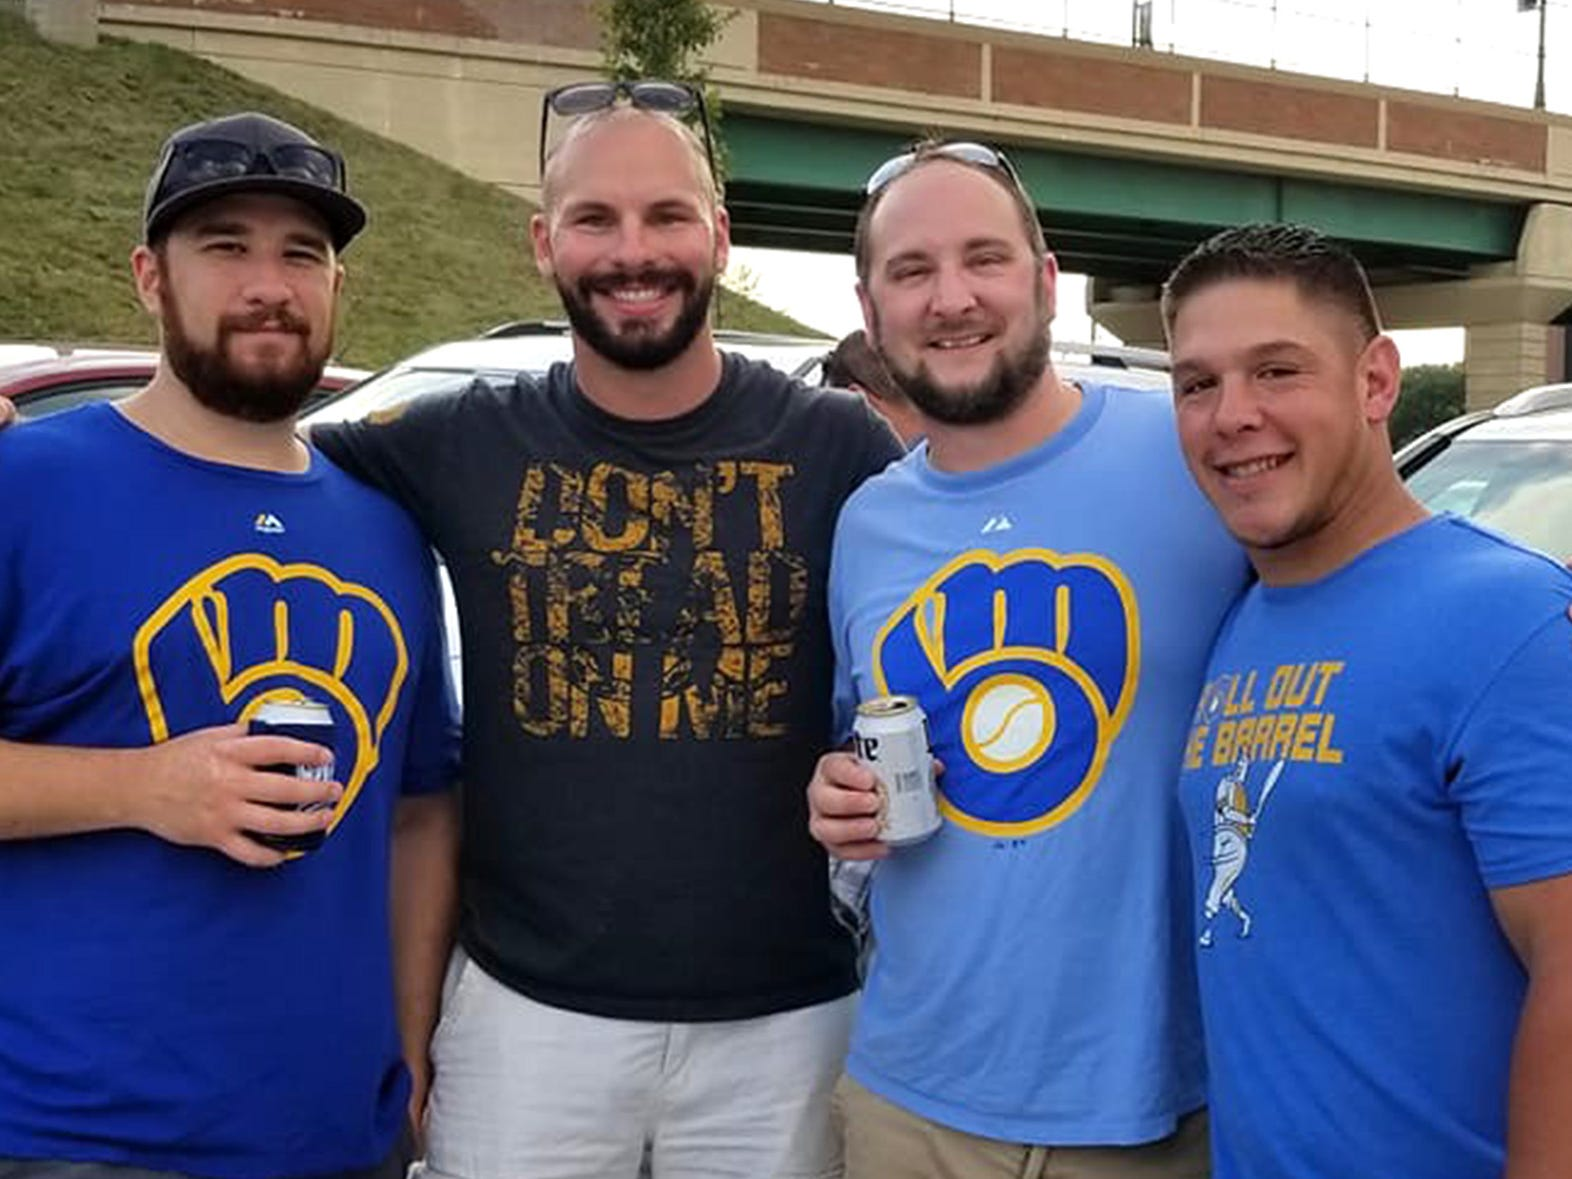 Matthew Rittner (right) attends a Brewers game last fall with fellow U.S. Marine veterans (from left) Frank Galindo, Max Zaruba and Bob Knoll.